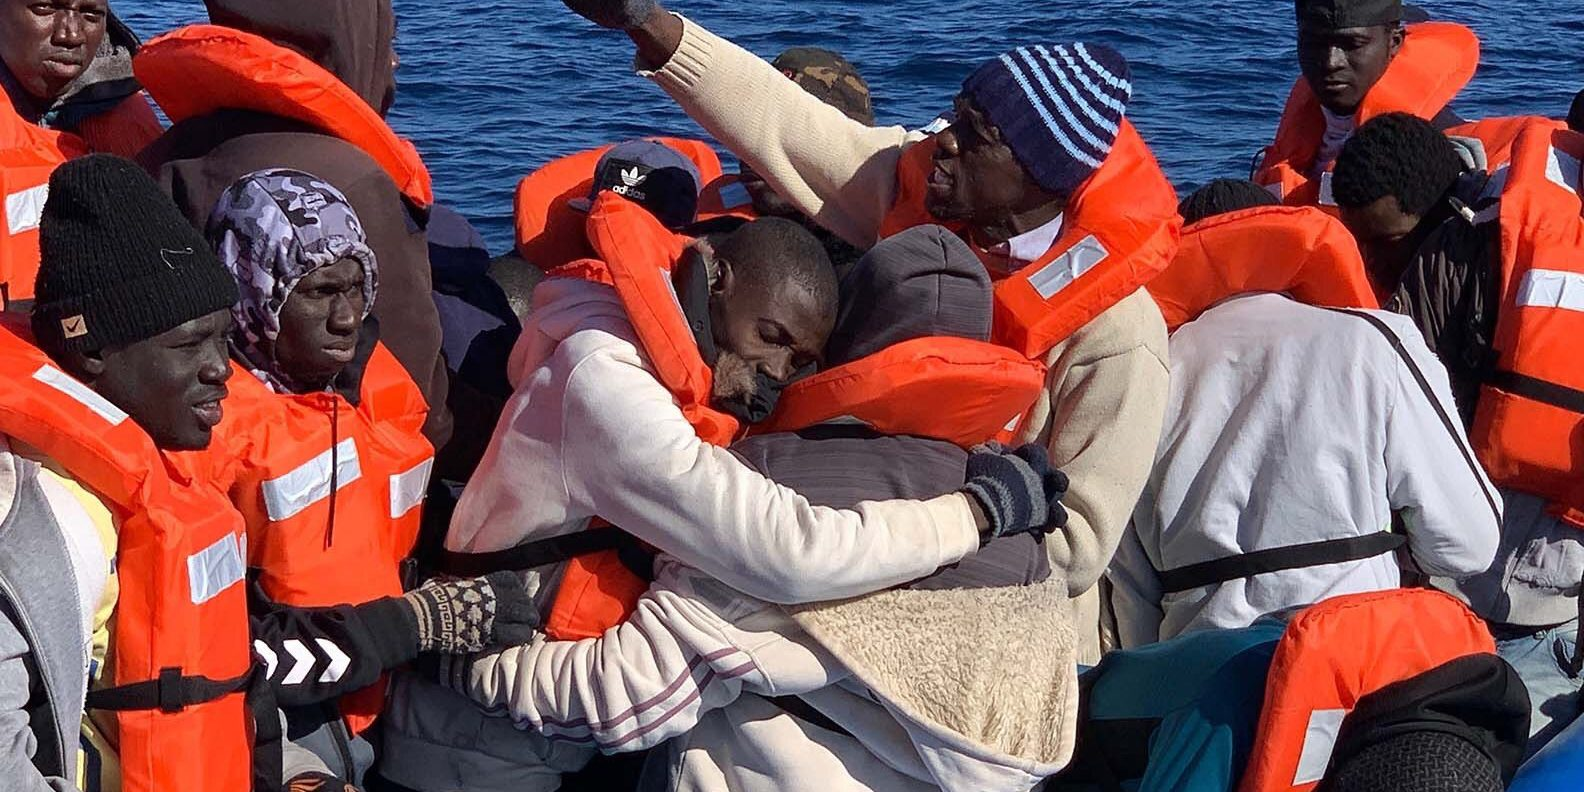 Le Sea Watch 3 vient de récupérer 47 migrants à son bord et se dirige vers la Sicile (photo : Sea Watch)